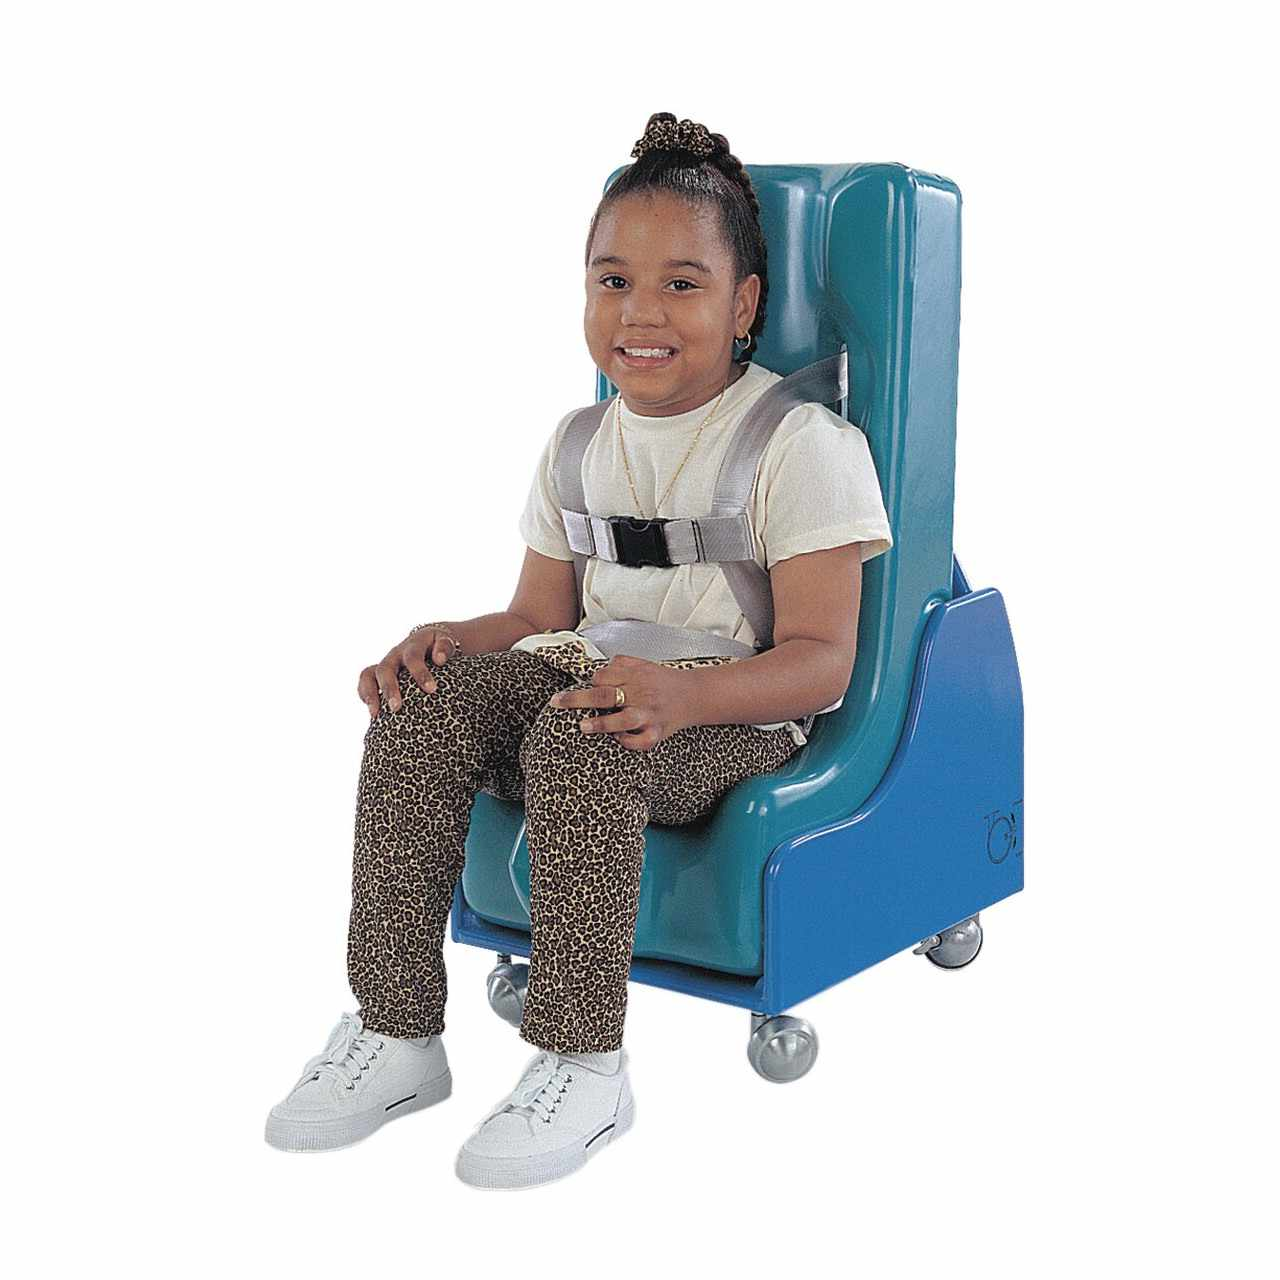 Tumble Forms Mobile Floor Sitter | Performance Health